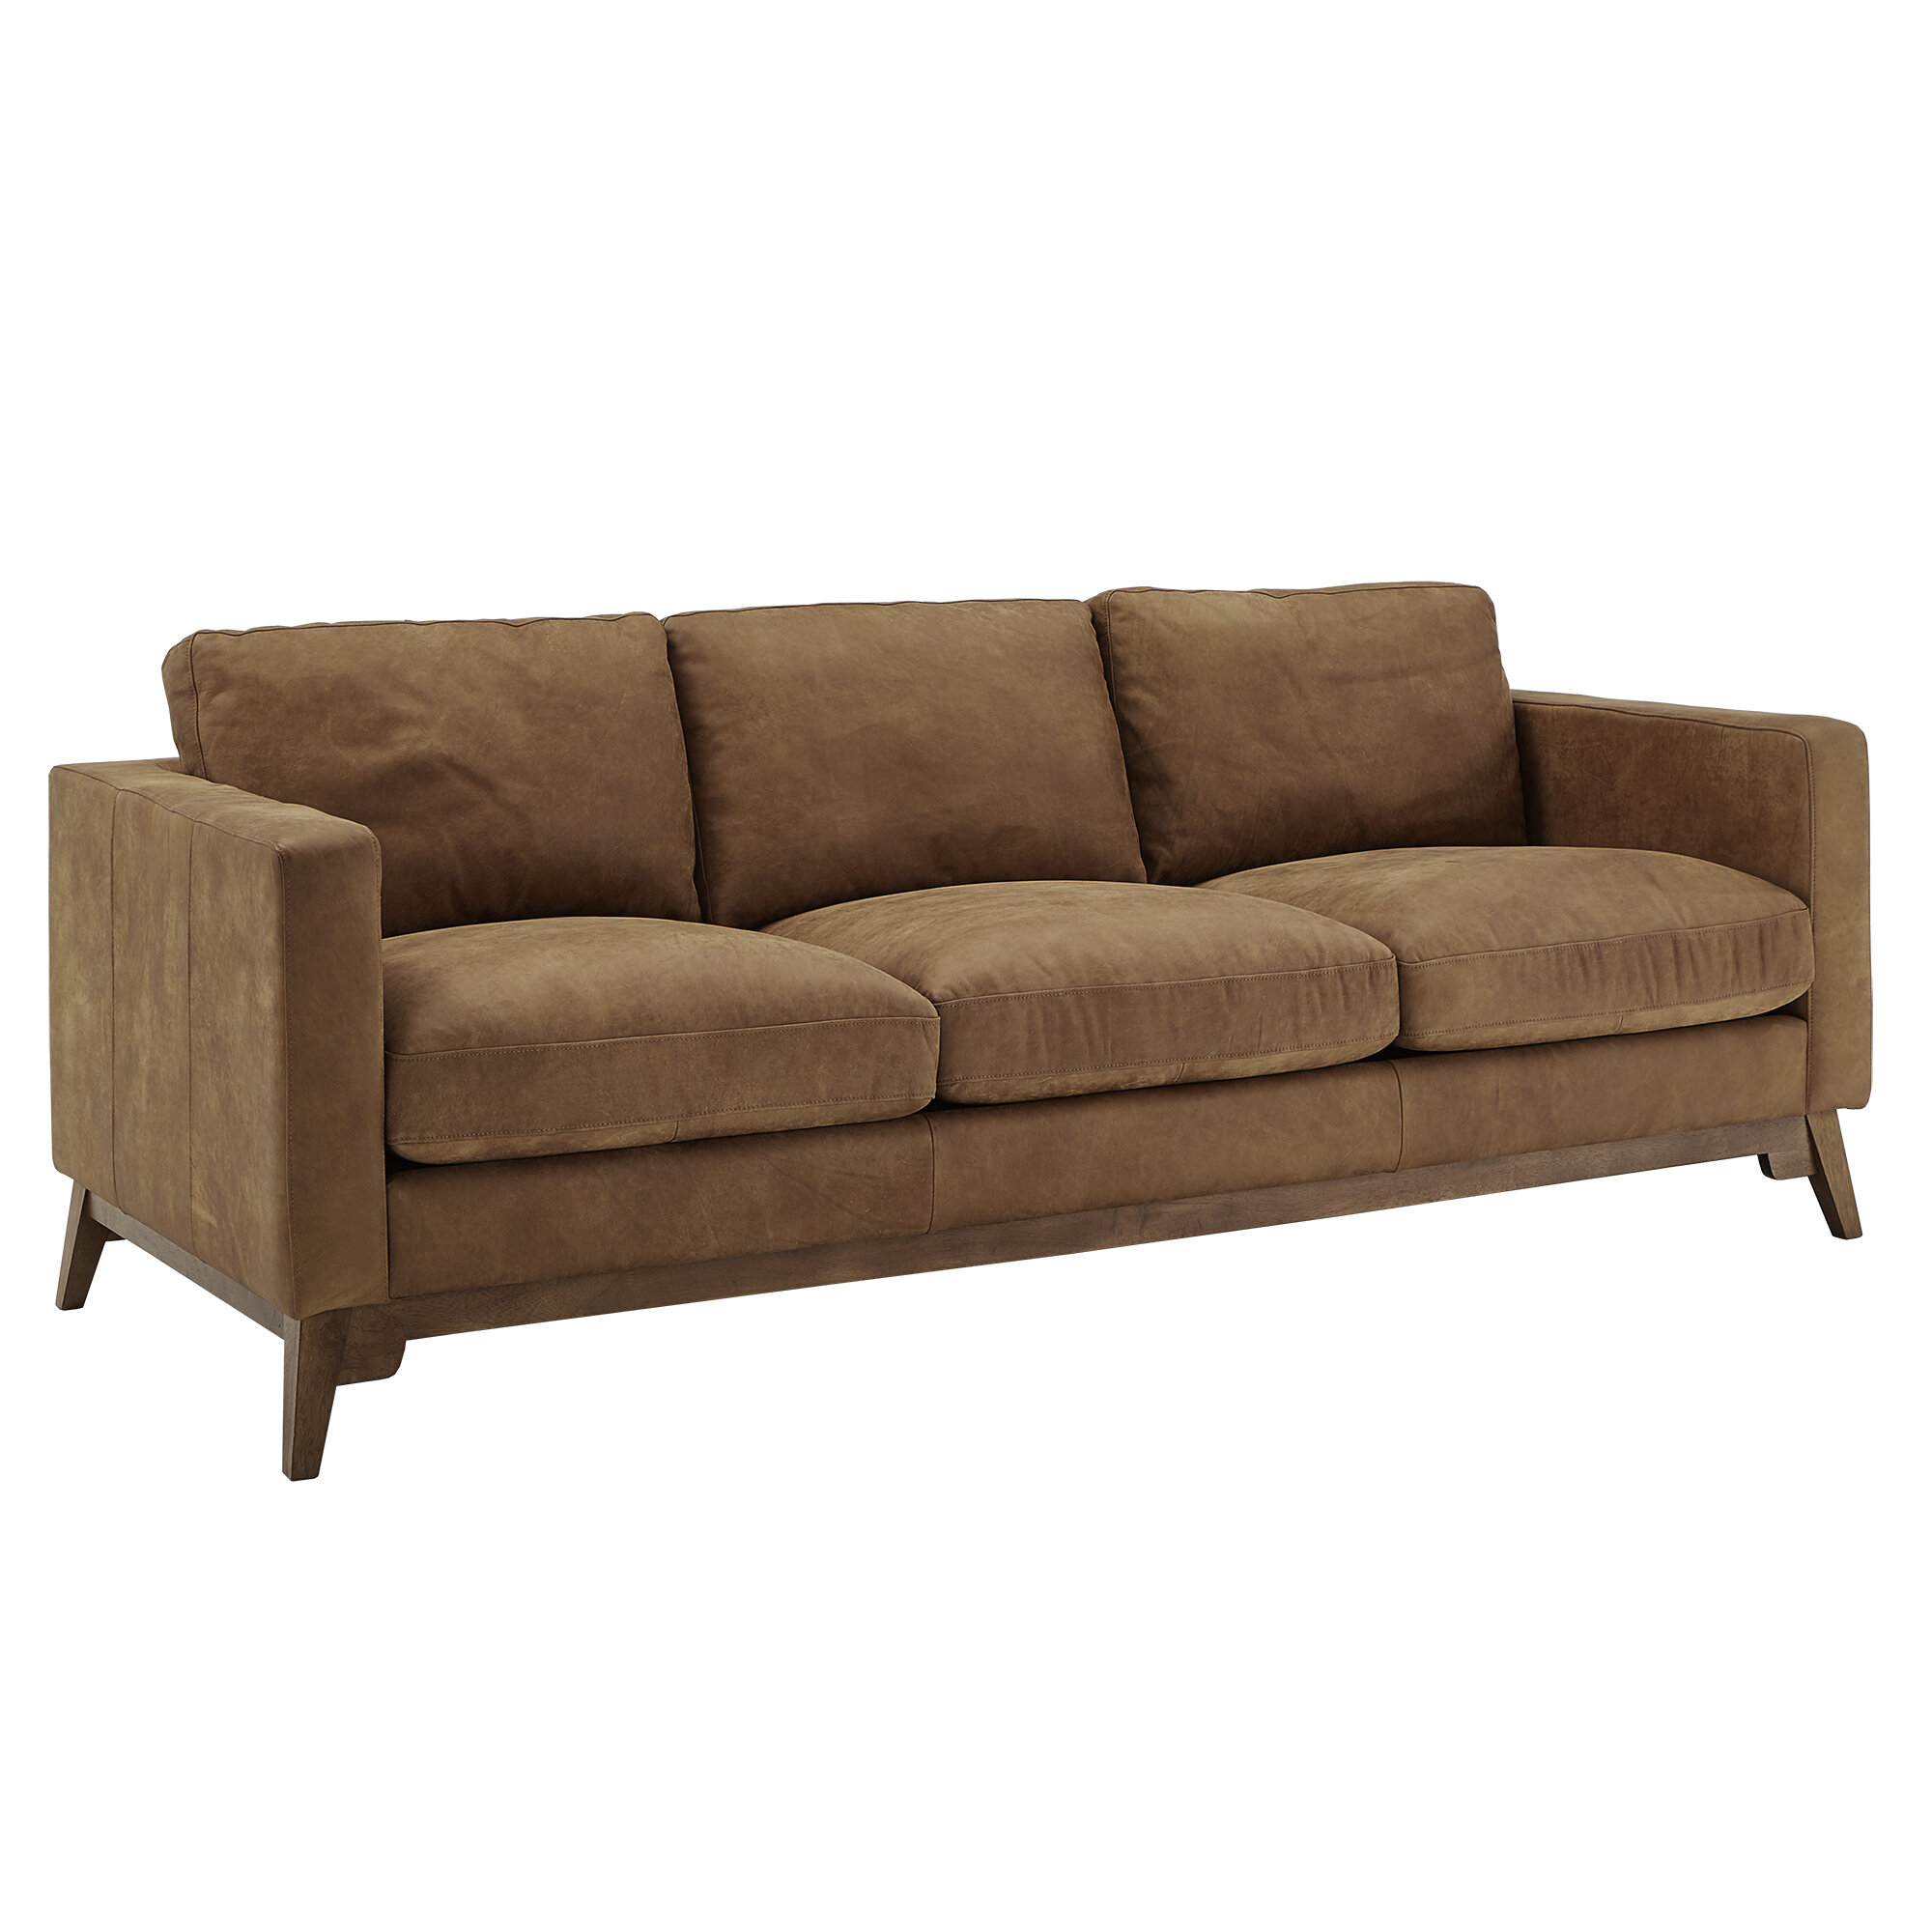 Union Rustic Aster Genuine Leather 88 Square Arm Sofa Wayfair